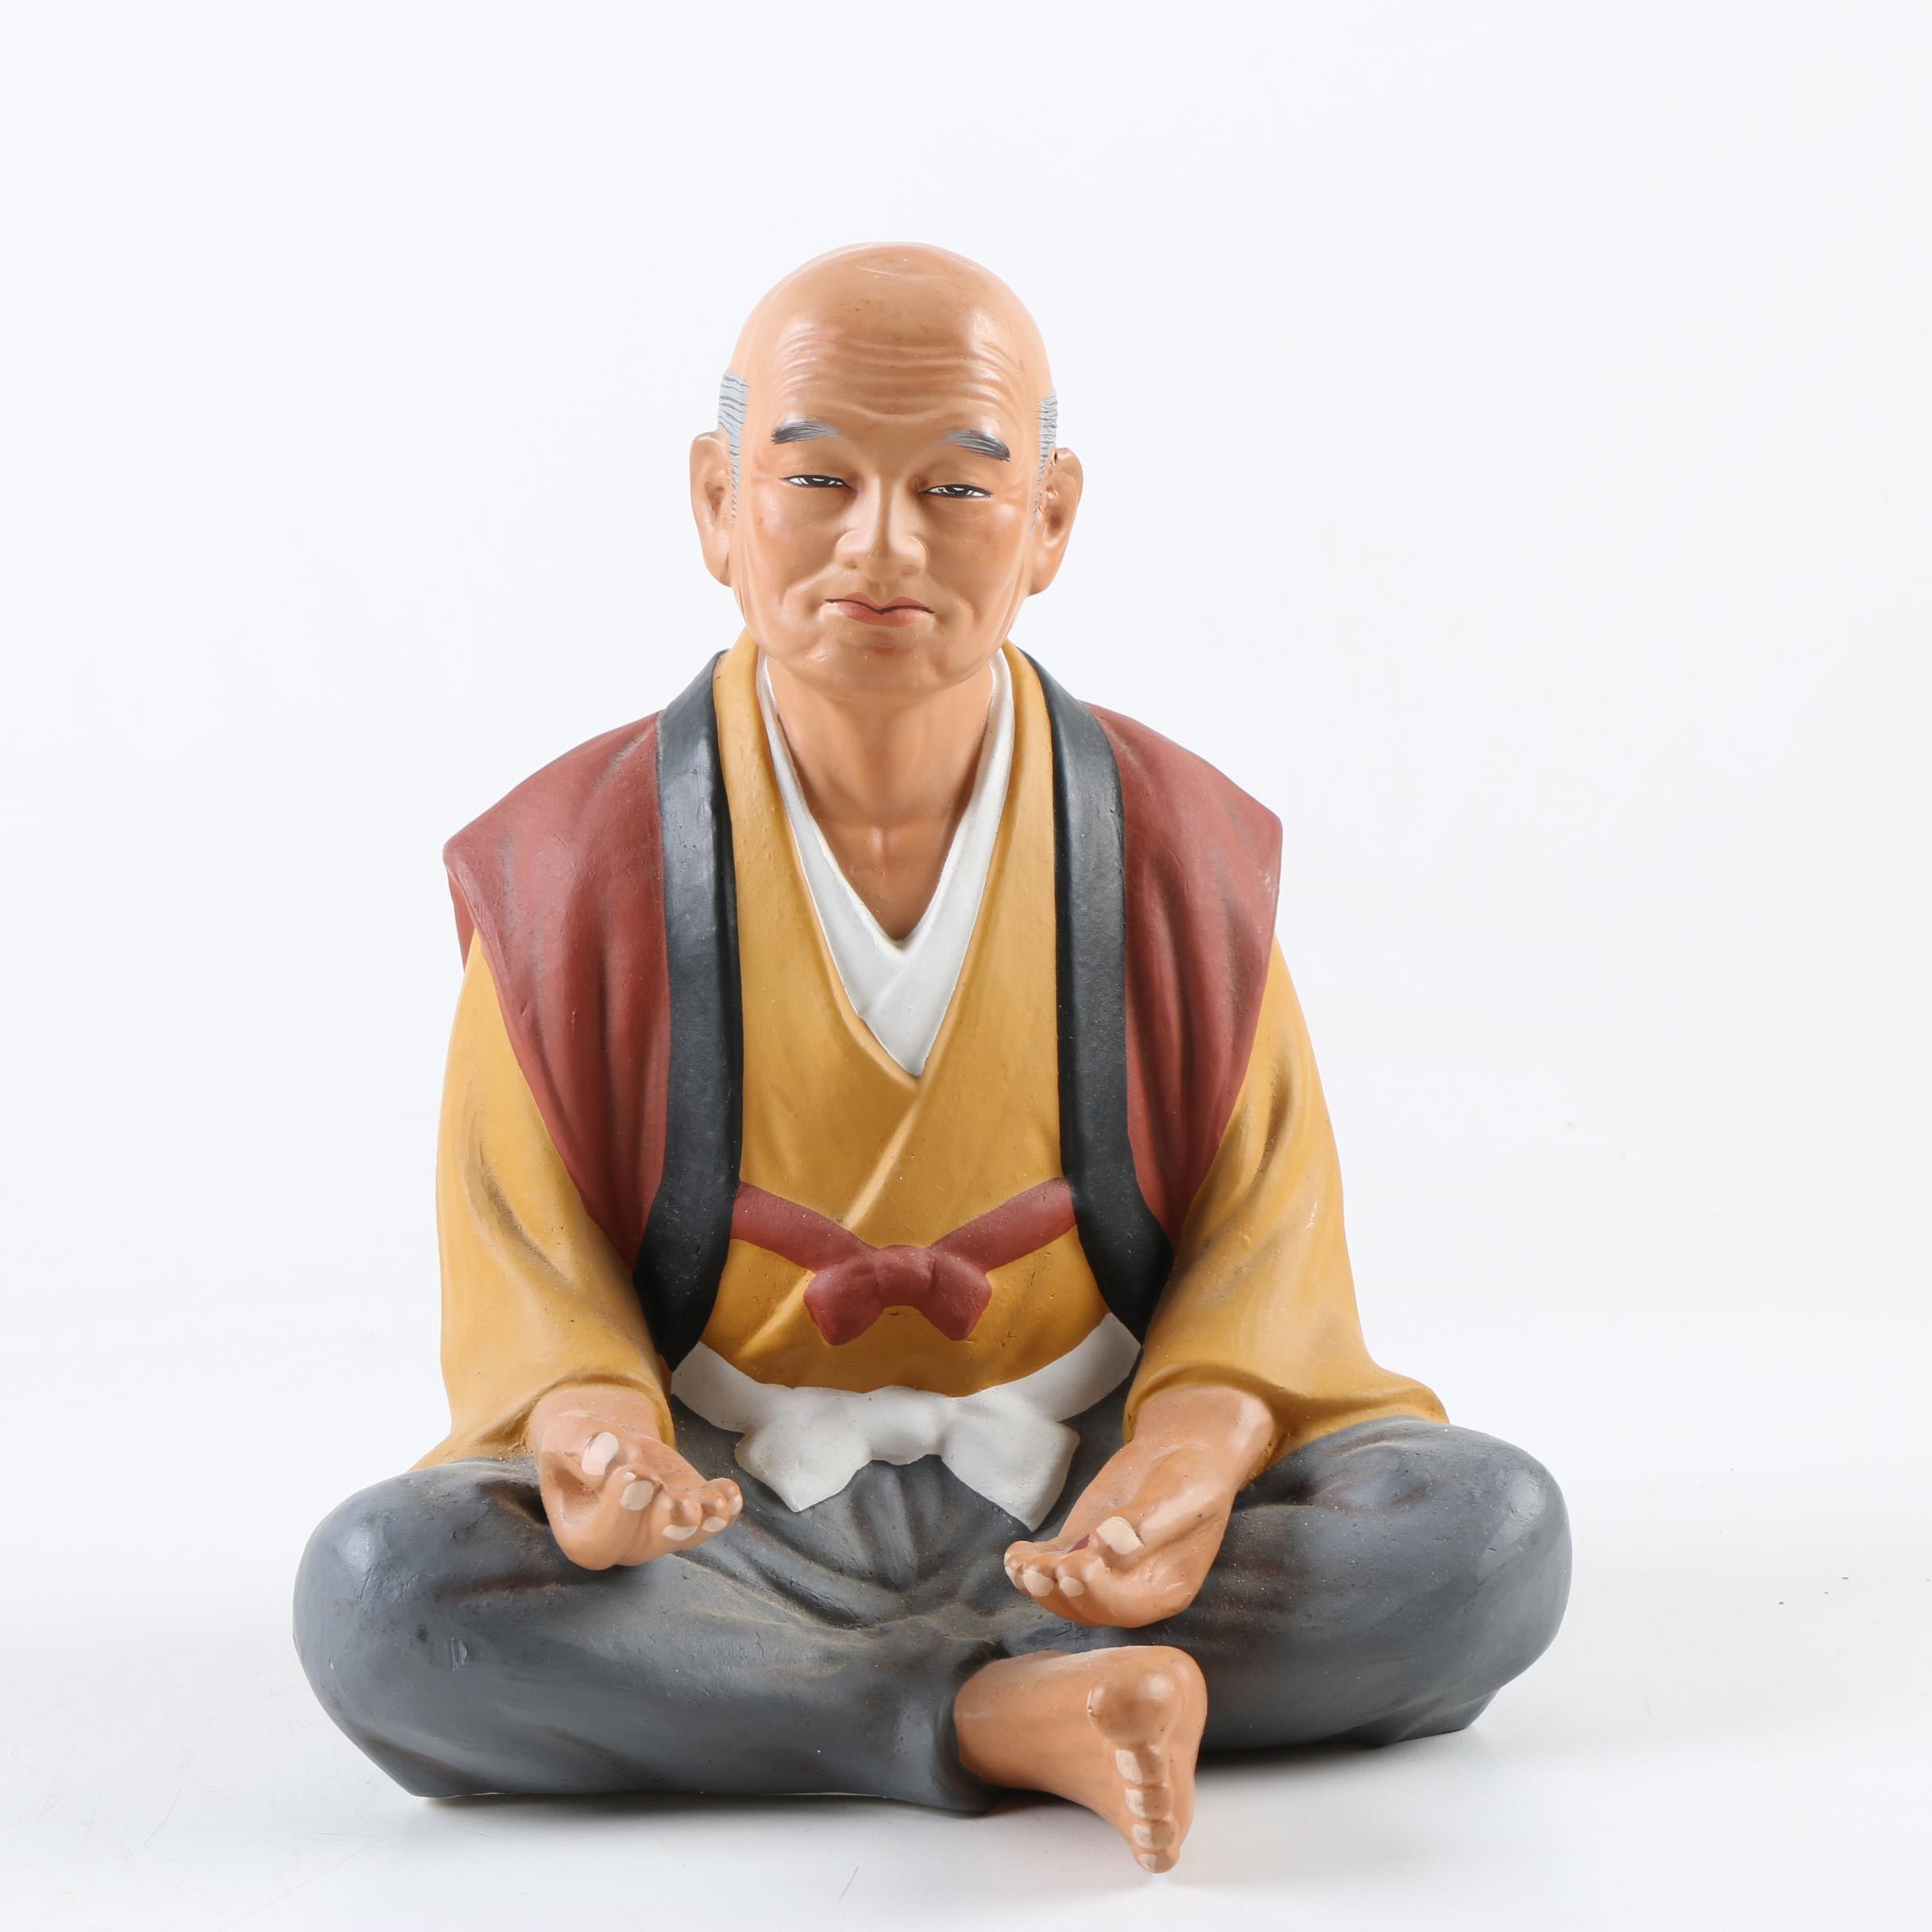 Japanese Hakata Style Ceramic Figurine of a Seated Man